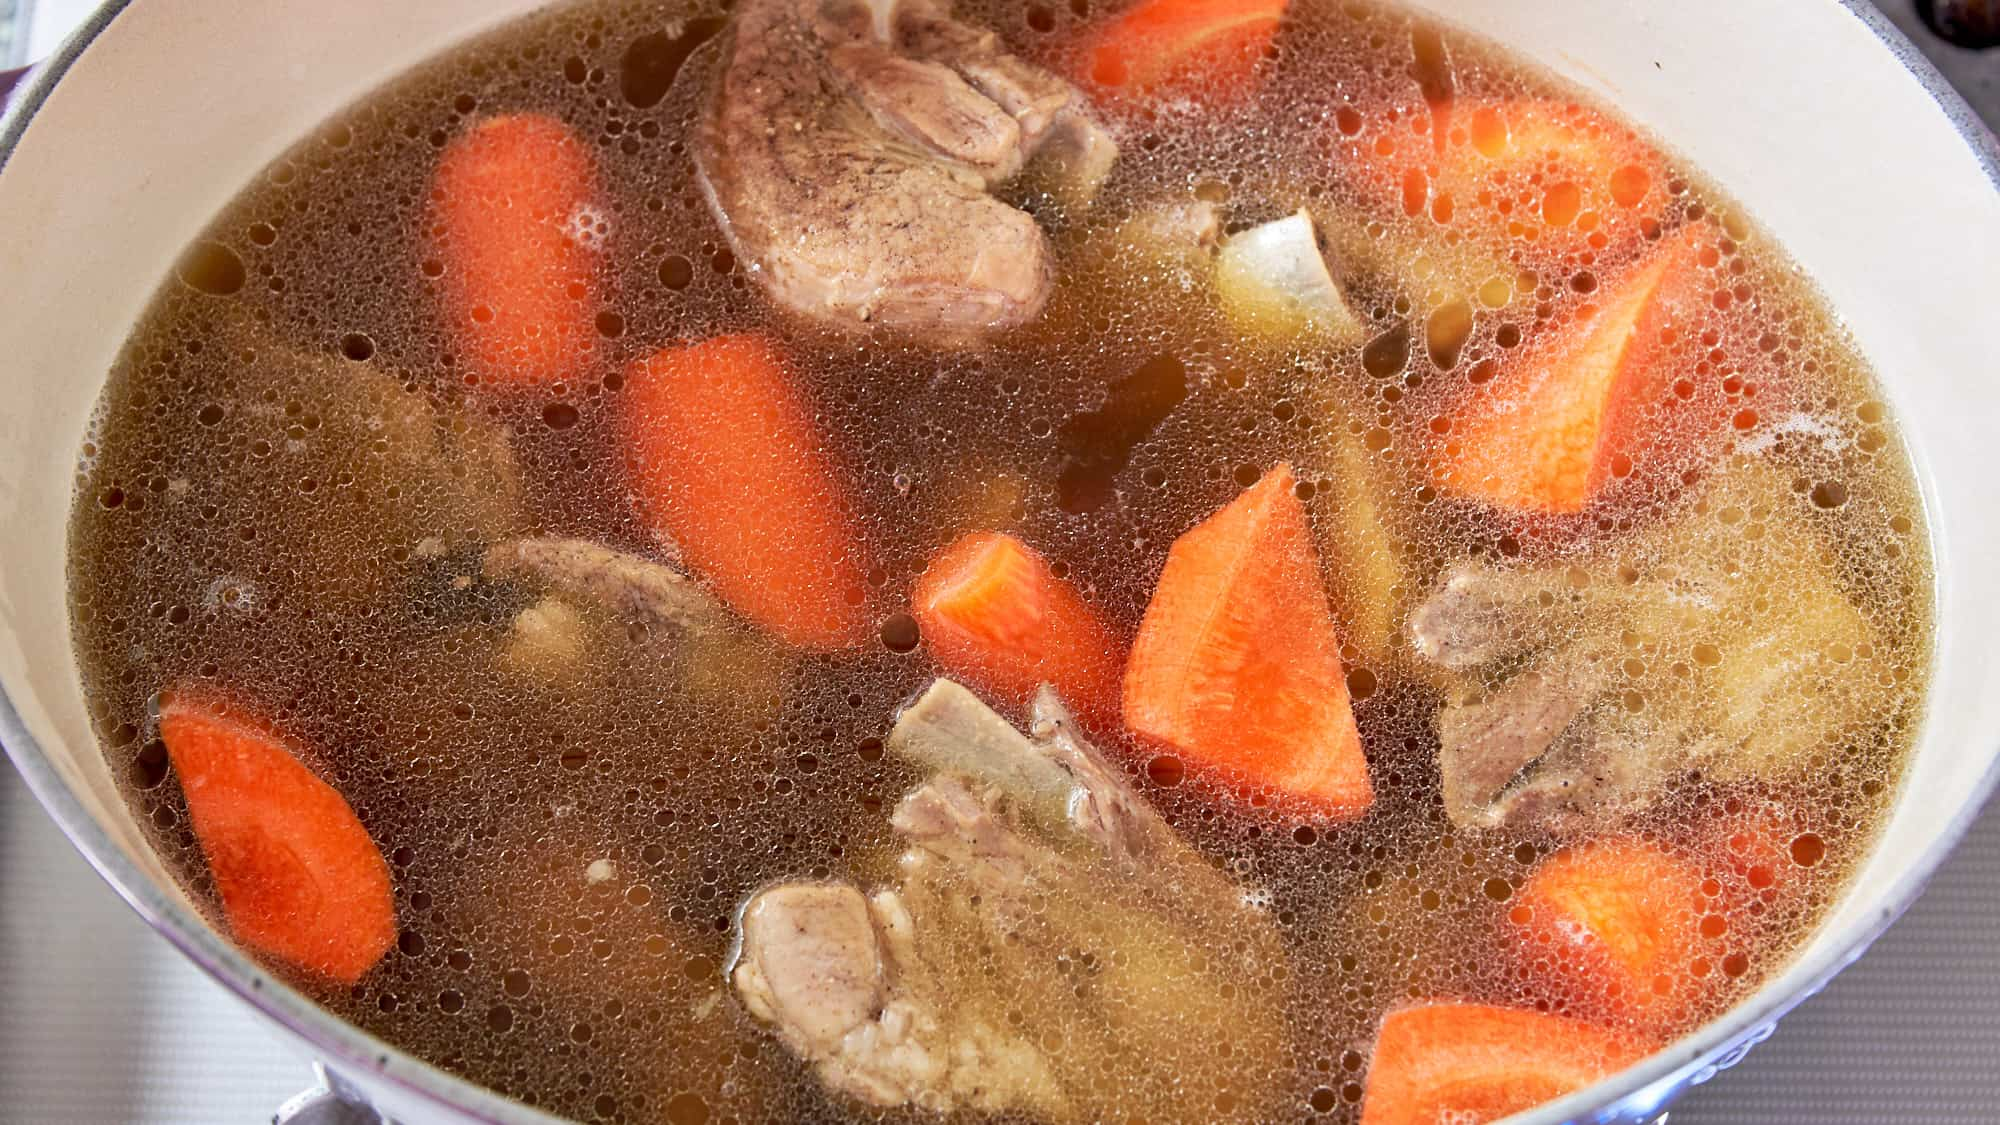 Tender spareribs, and stock returned to Dutch oven with strained stock for making Pot au Feu recipe.